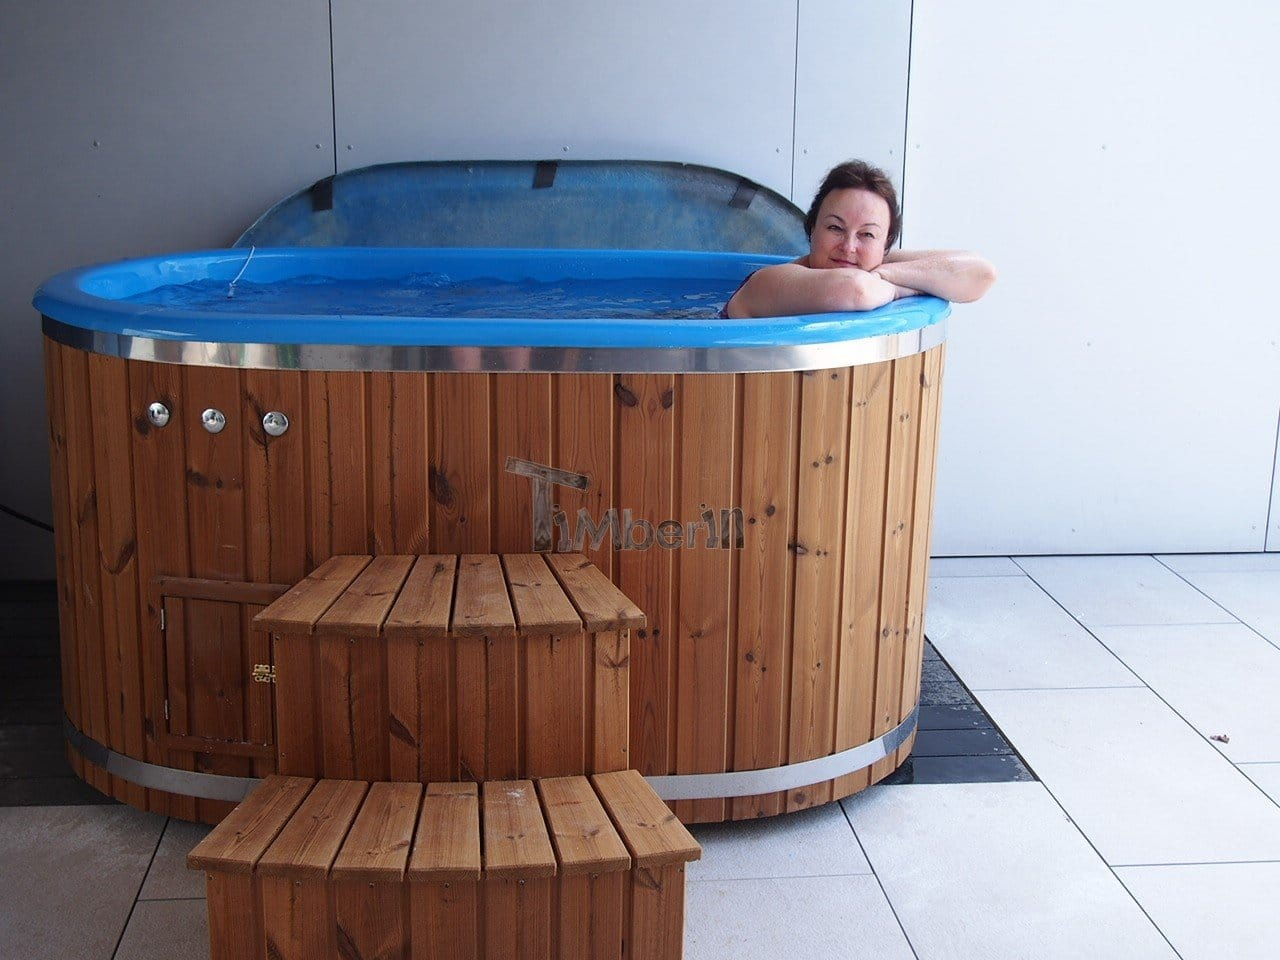 Oval-hot-tub-for-2-persons-with-fiberglass-liner-Geoffrey-and-Sandra-Dörflingen-Schwitzerland-2 Testimonials